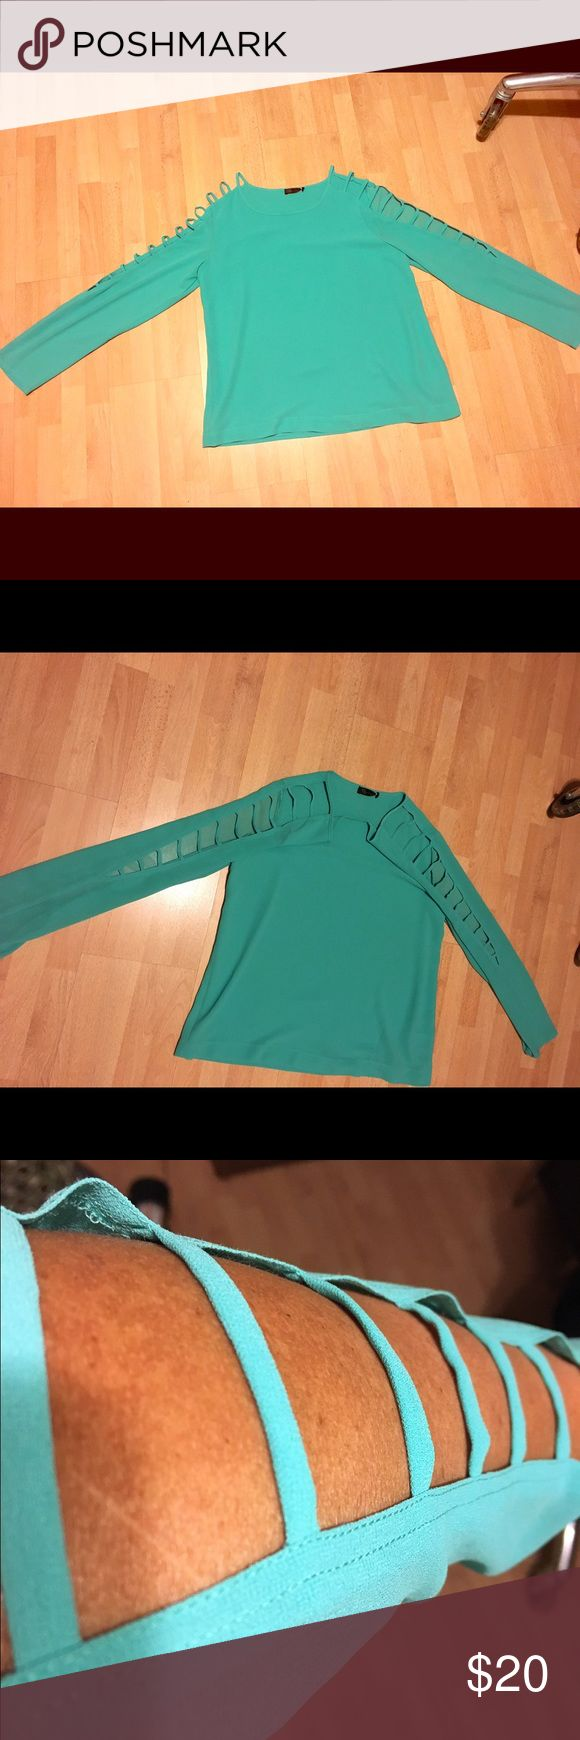 Long sleeve blouses with cut outs Beautiful turquoise shirt with cut out sleeves. The front of the shit us lined. It had a round neck. kld signiture Tops Blouses